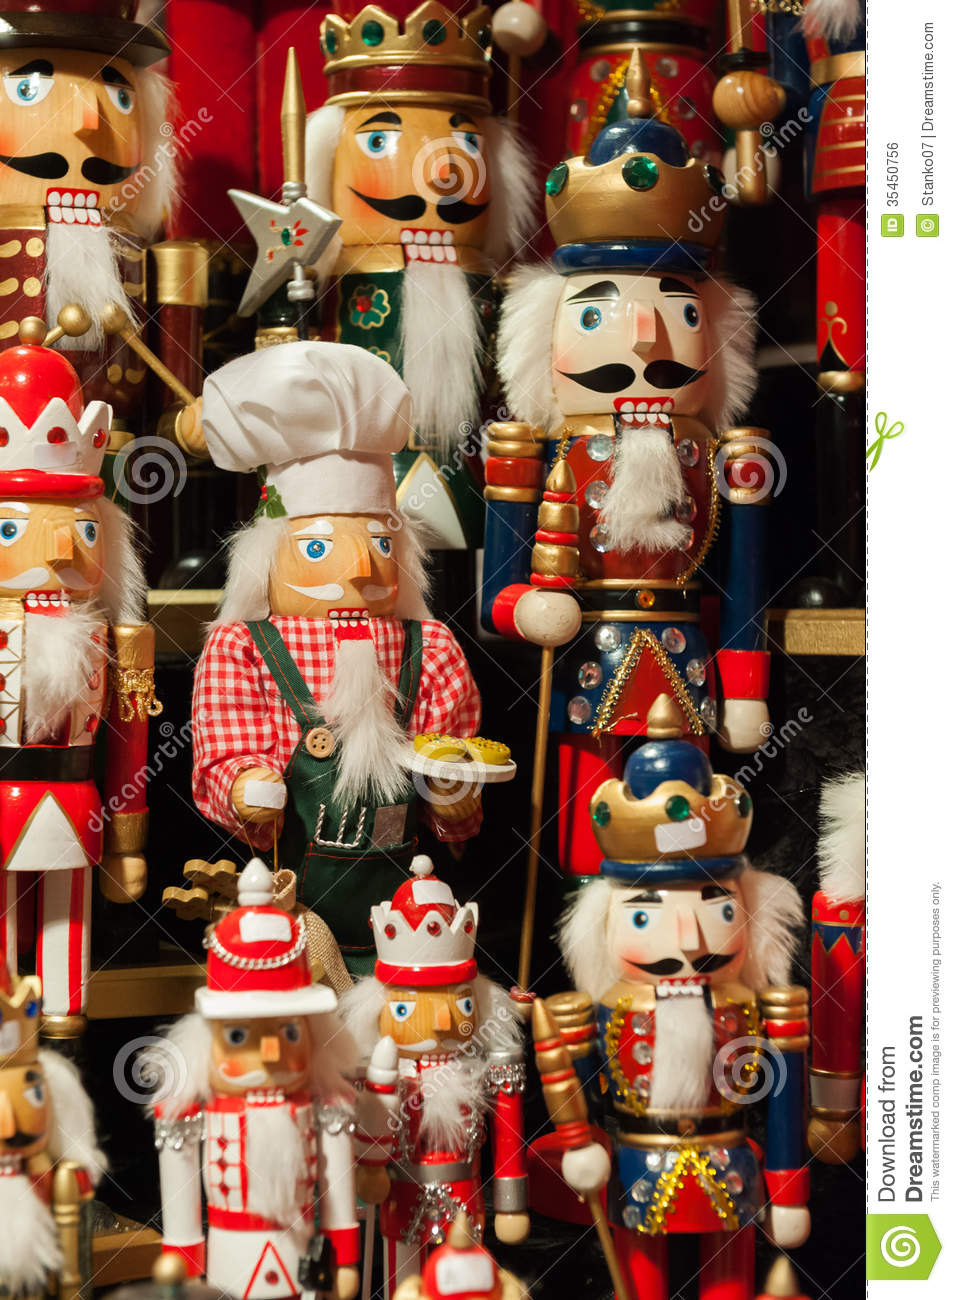 Traditional german christmas decorations - Nutcrackers Christmas Figurines Royalty Free Stock Image Christmas Colorful Figurines German Market Traditional